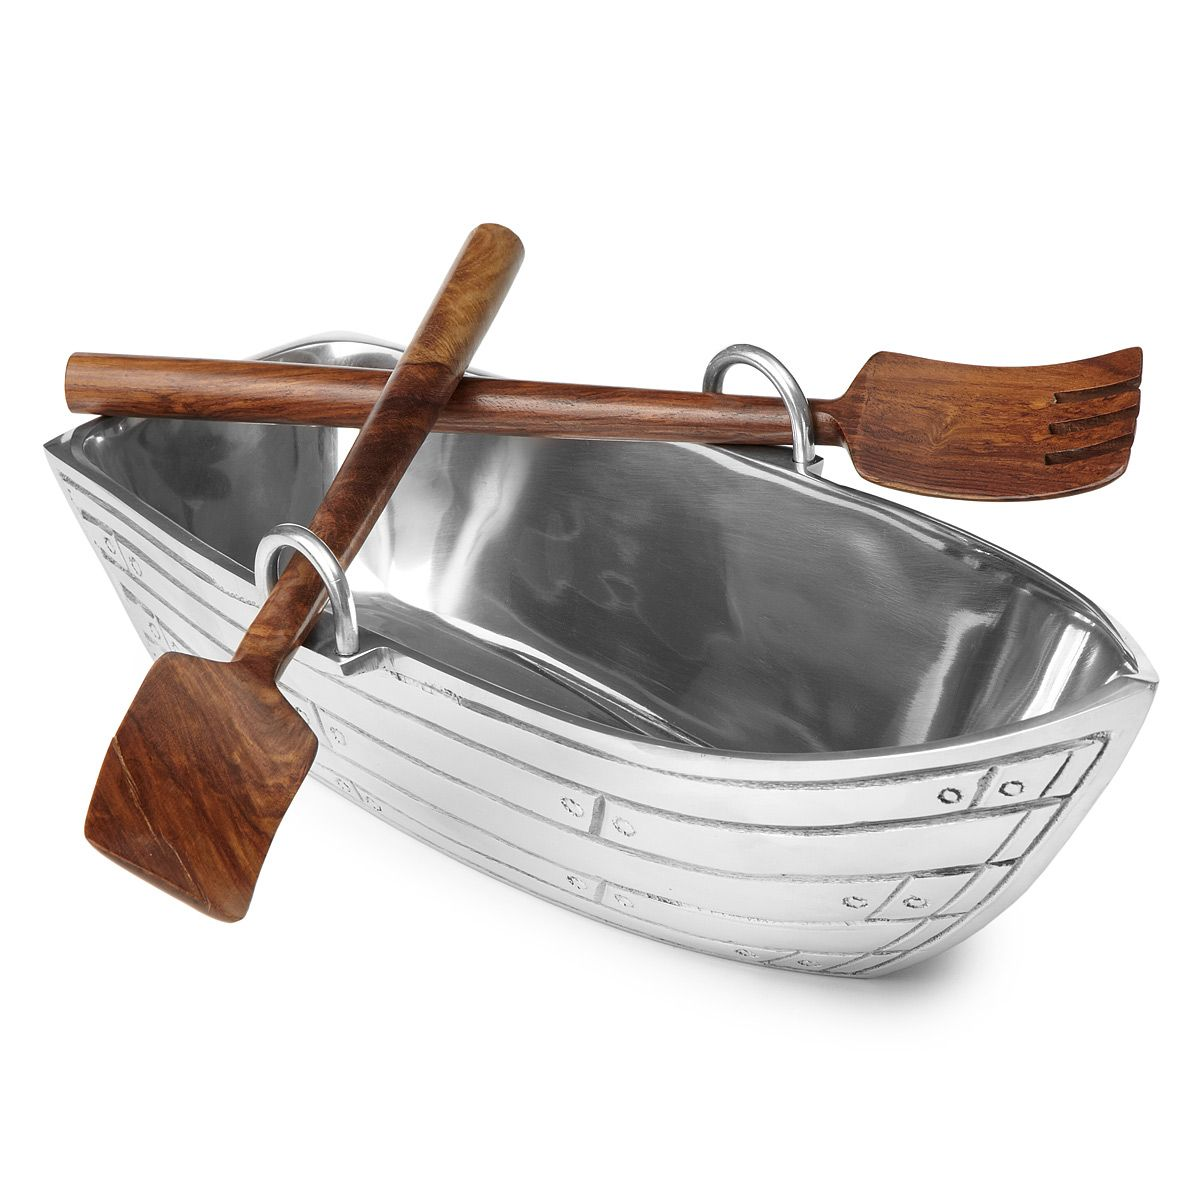 Row Boat Serving Bowl with Wood Serving Utensils | Serving utensils ...